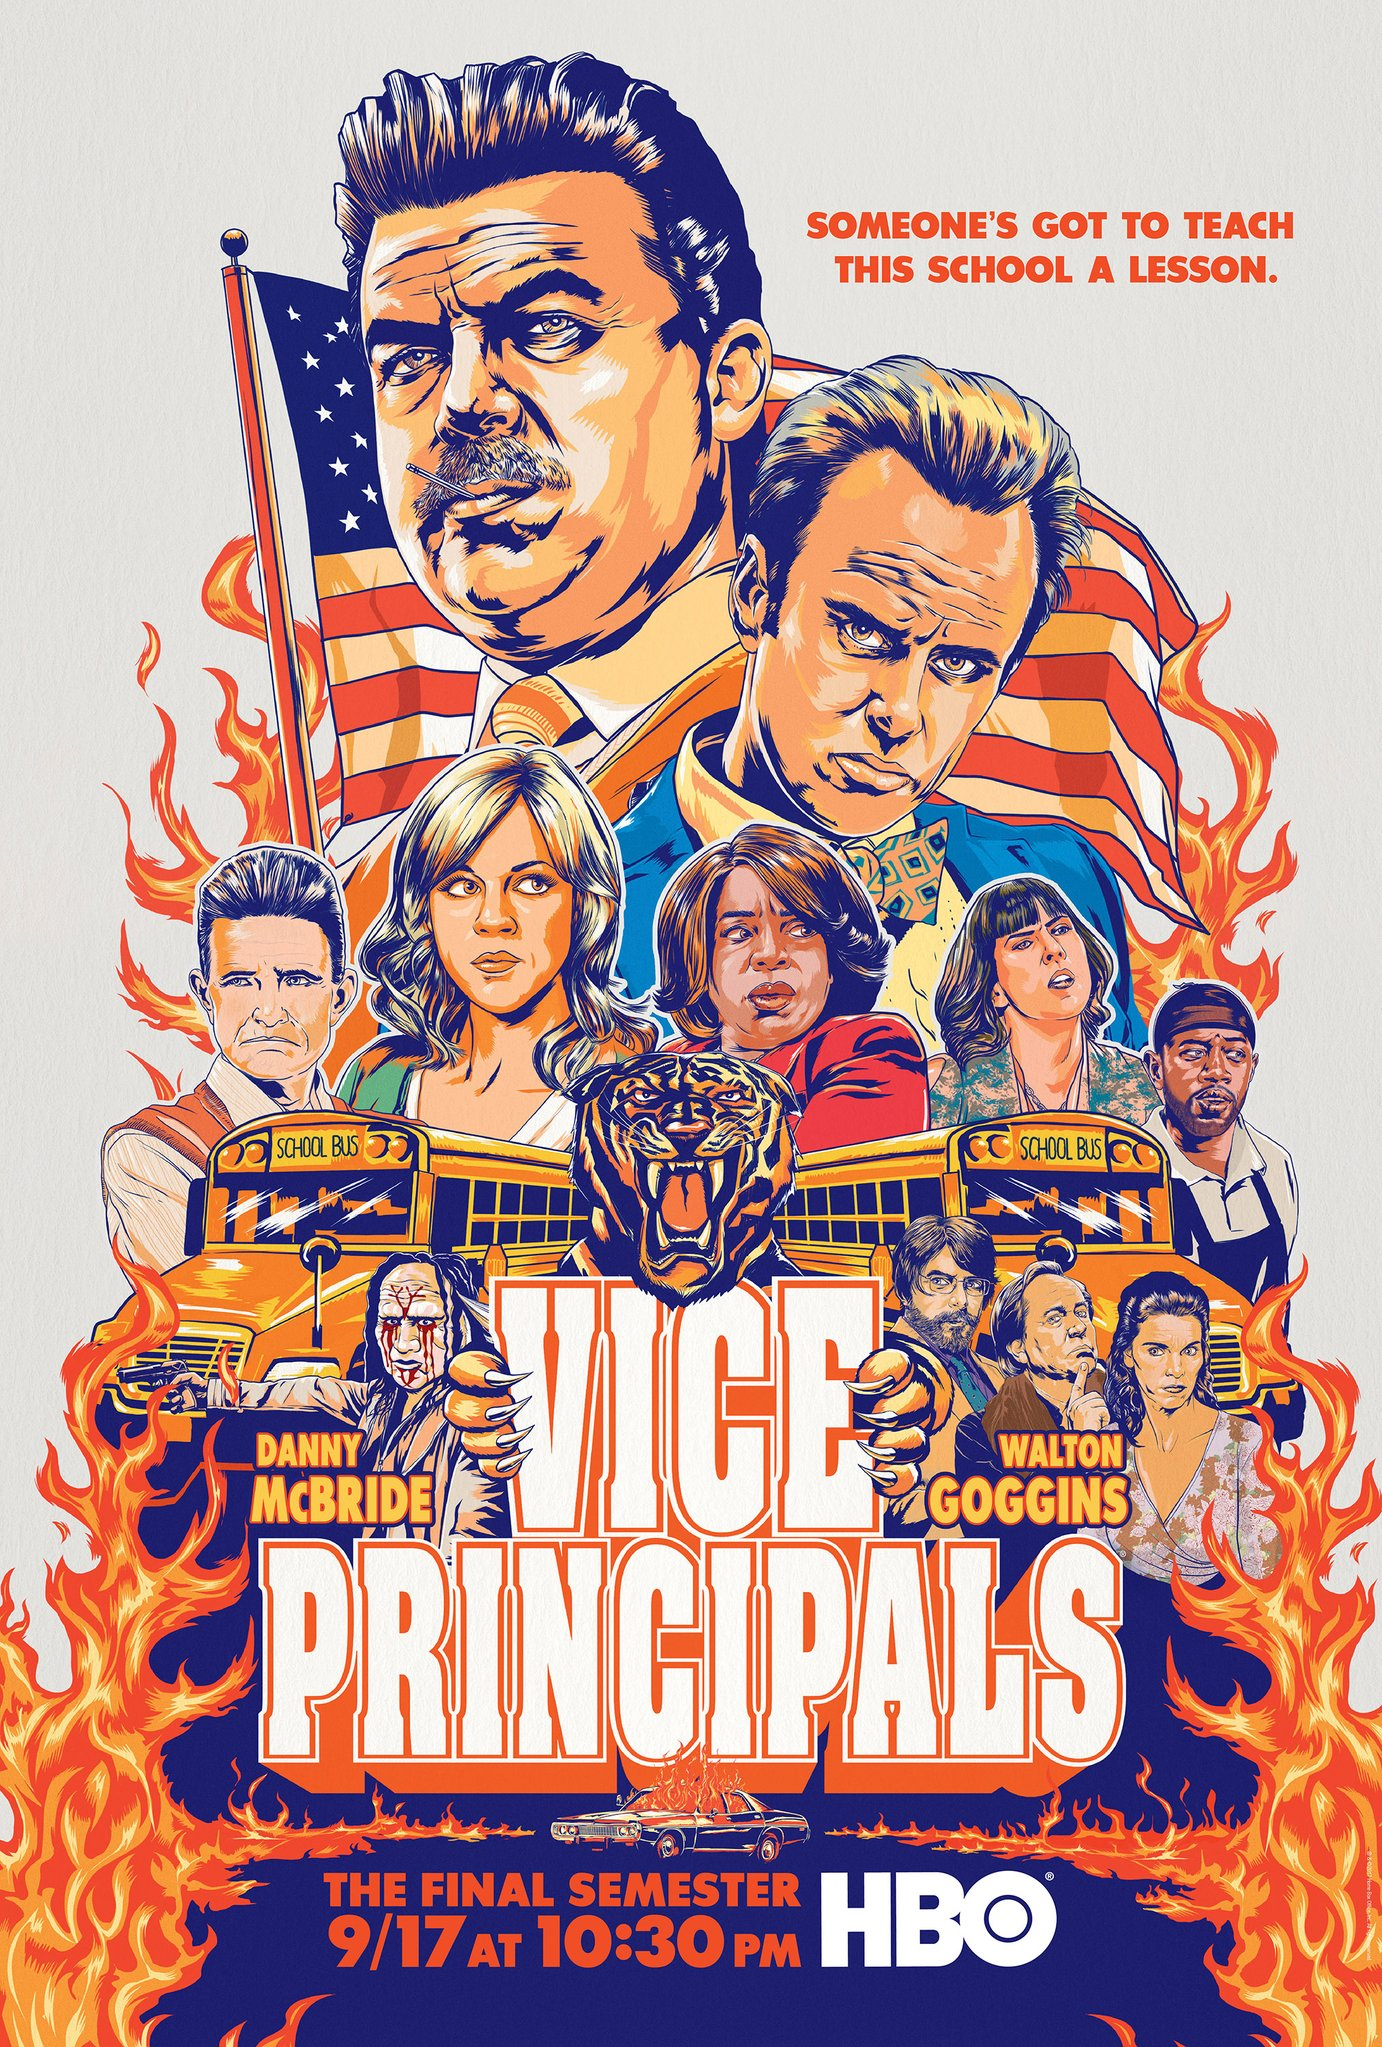 Vice Principals Season 2 Trailer HBO Danny McBridge Walton Goggins